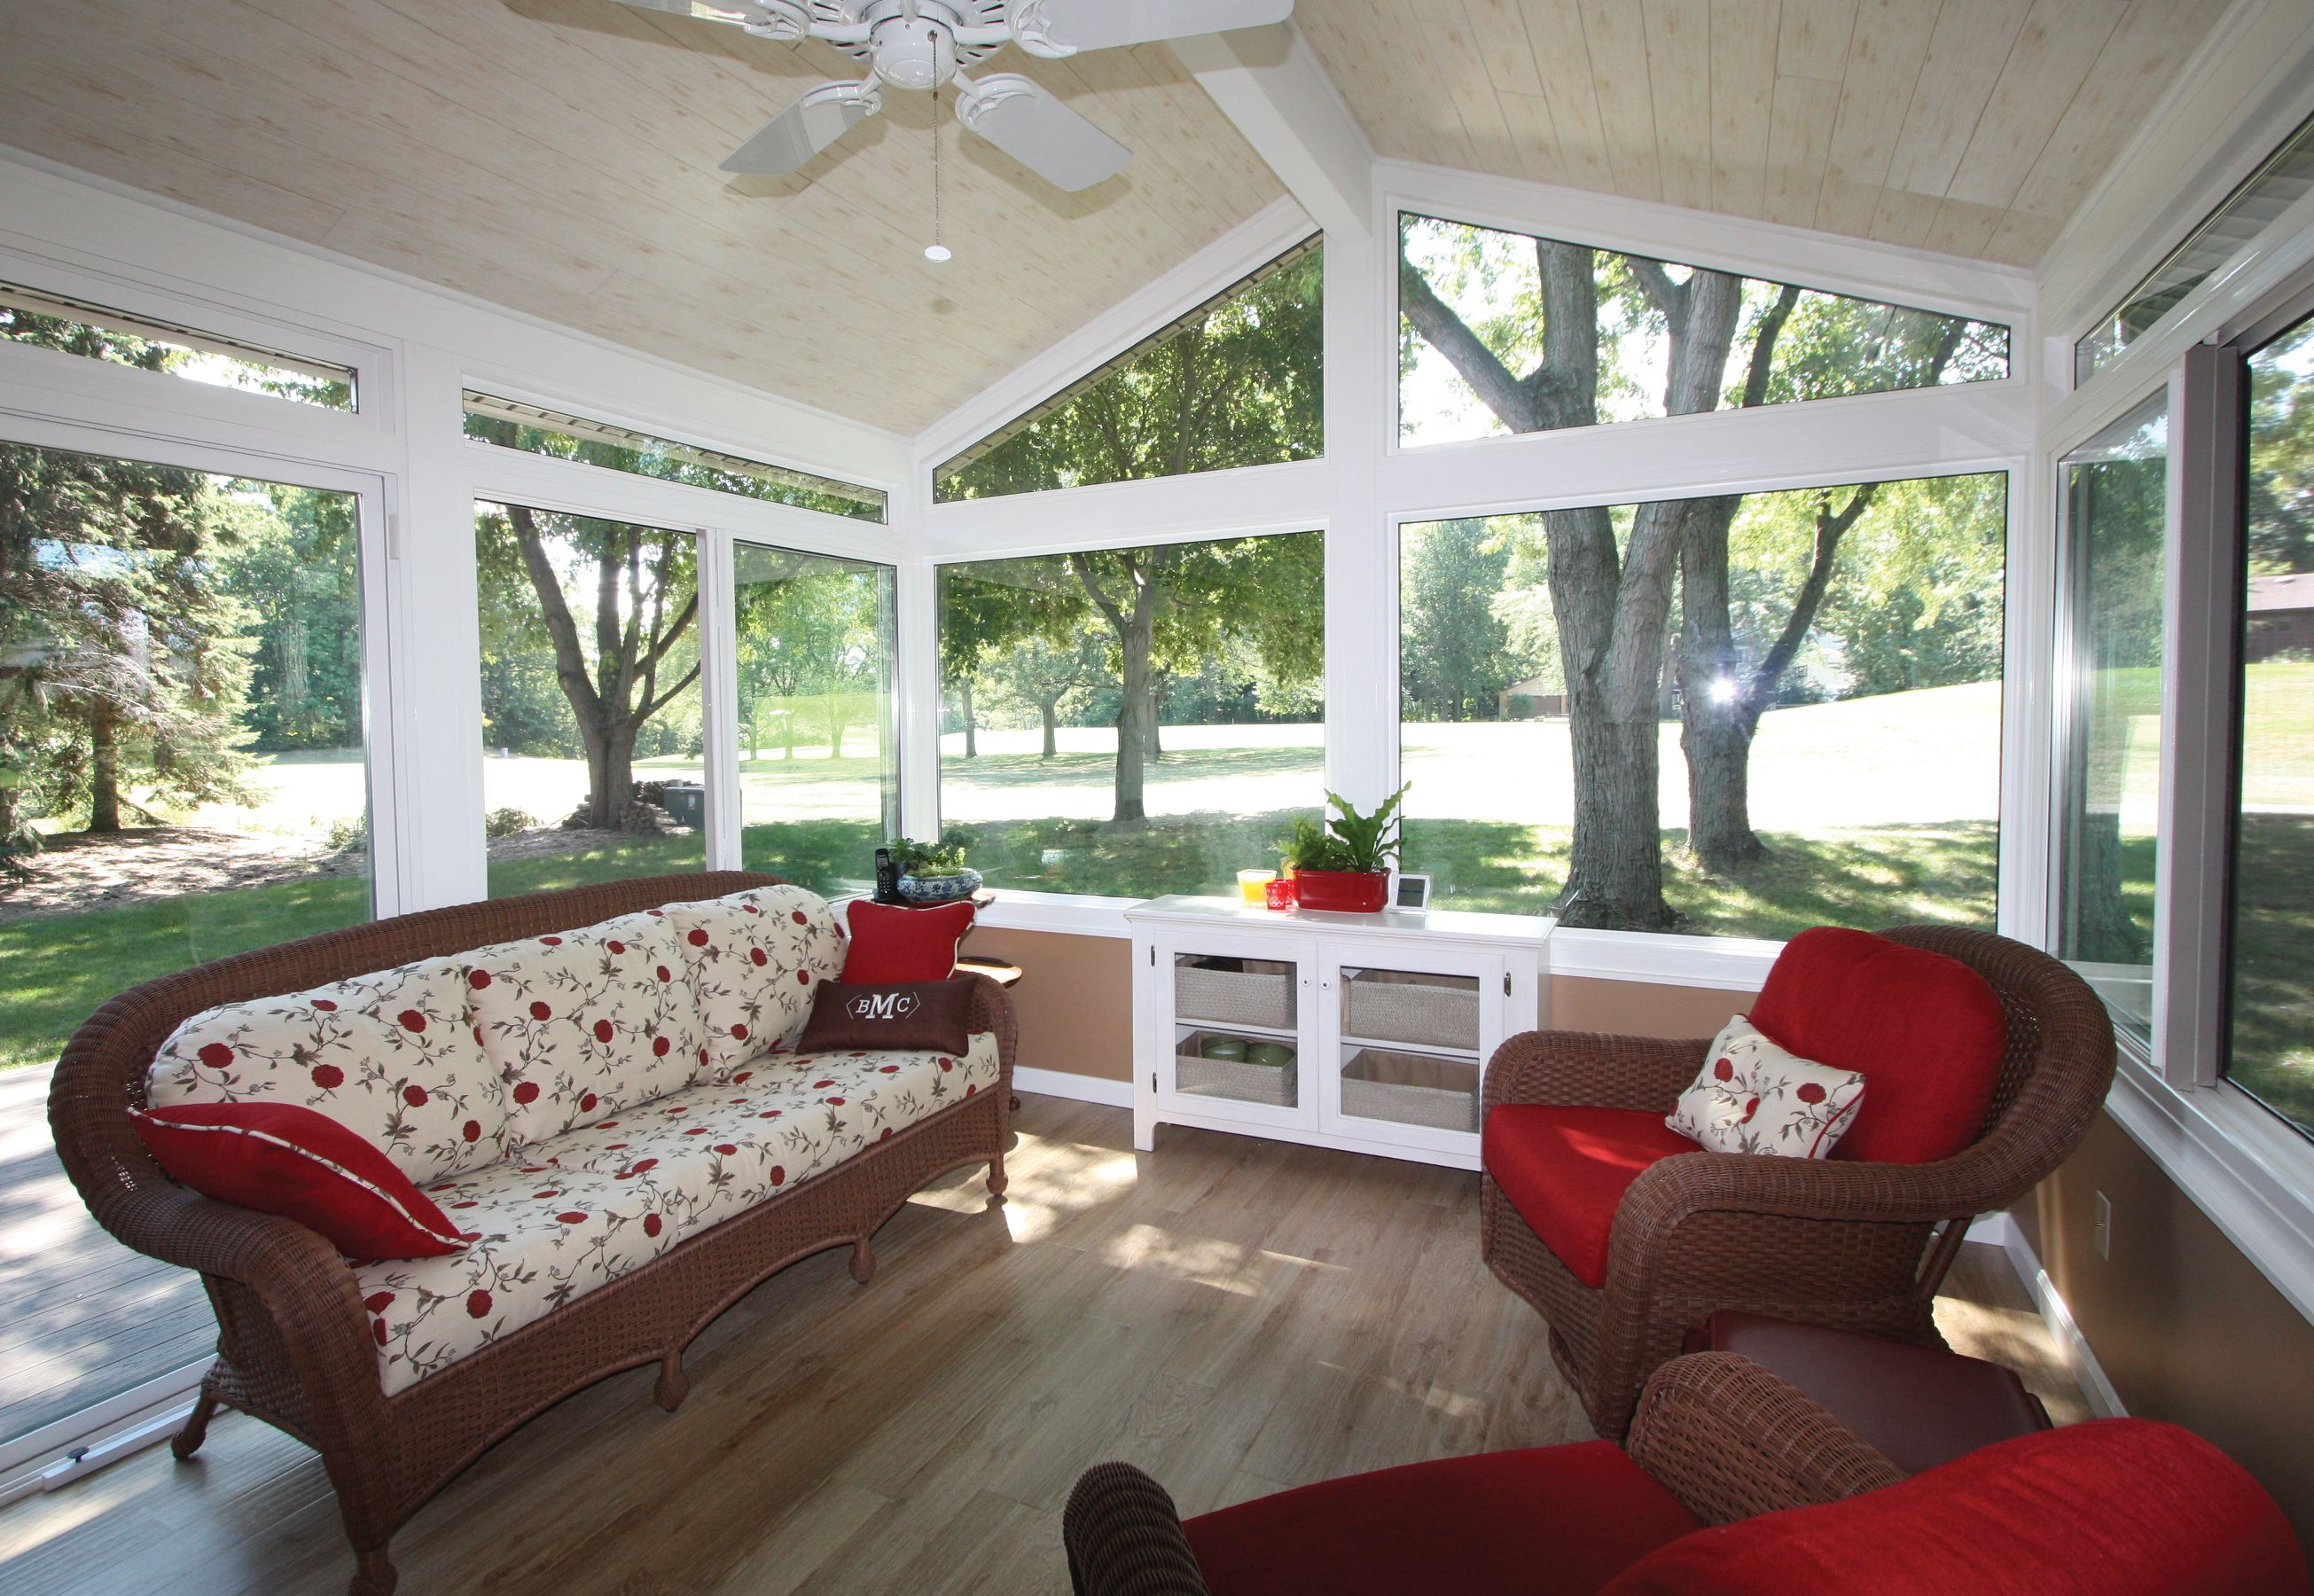 sun room furniture. sunroom furniture pictures gloss laminate also charming set design ideas sun room g